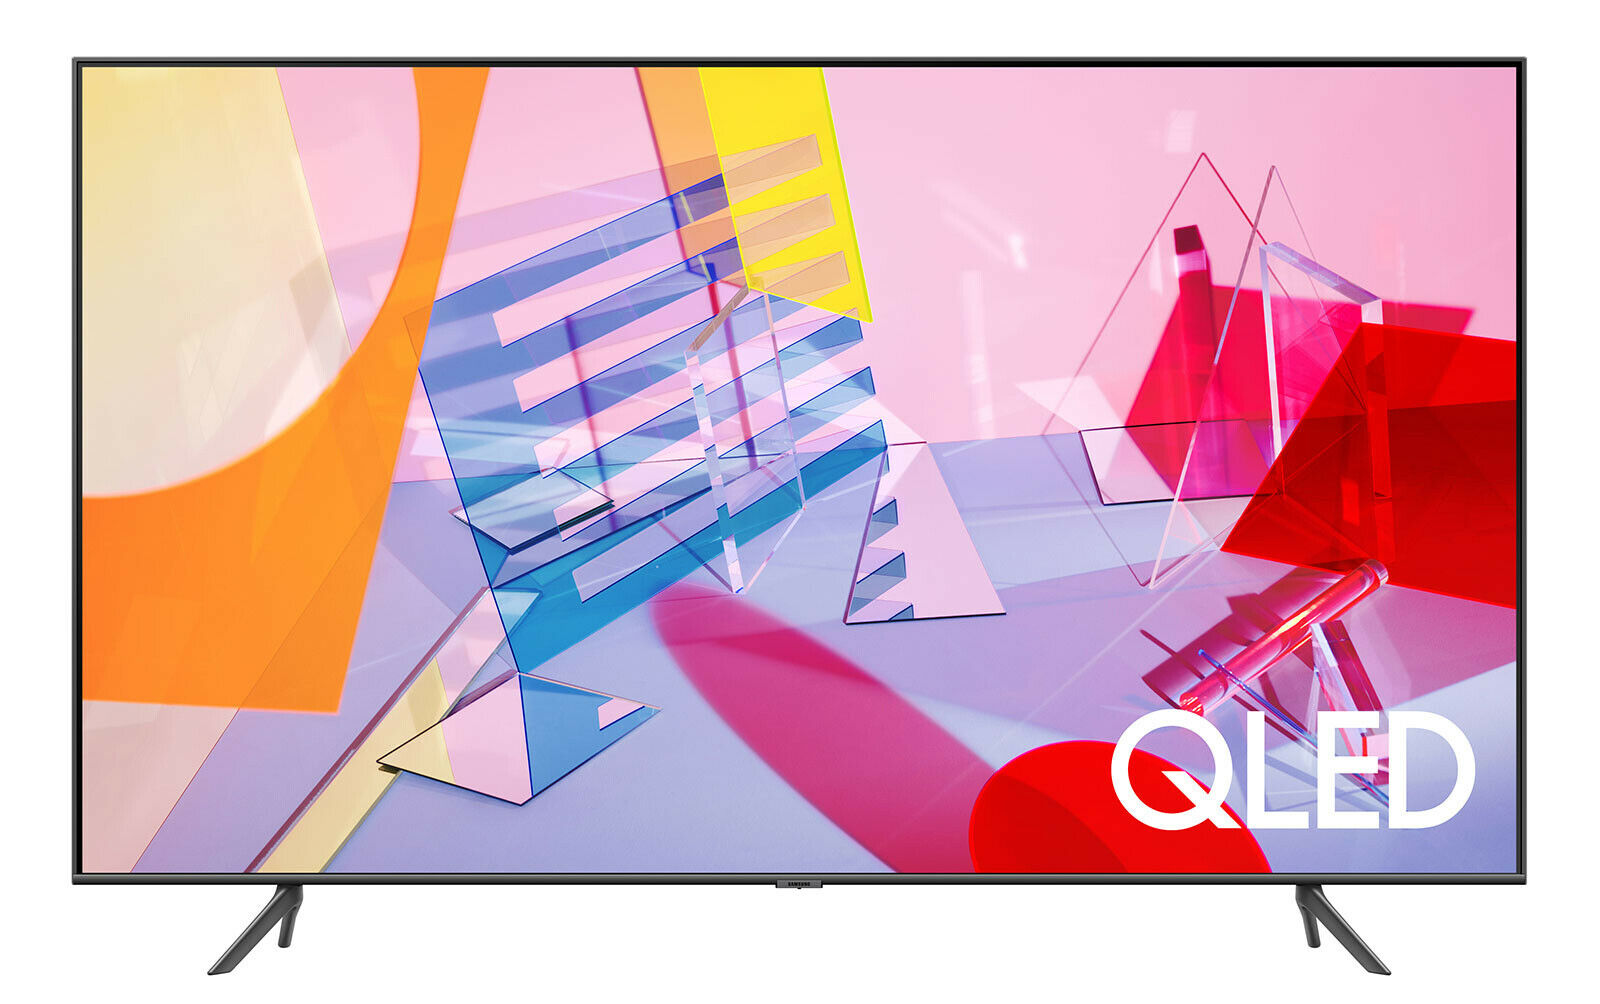 Samsung QN75Q60TAFXZA 65 4K QLED Smart TV - Titan Gray. Available Now for 1259.00